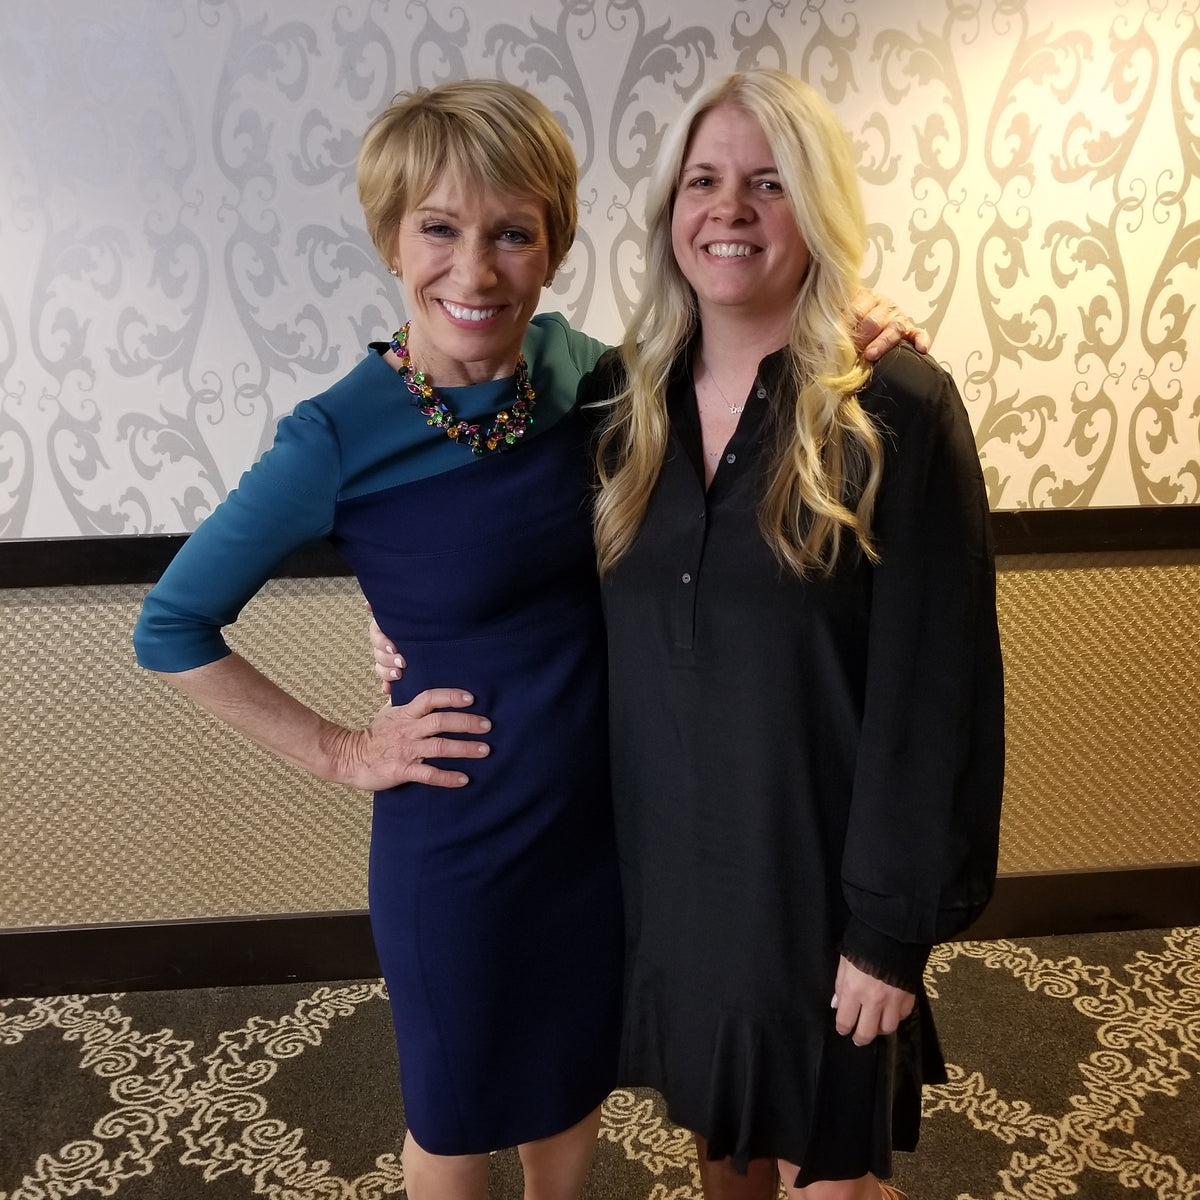 My amazing day meeting Barbara Corcoran